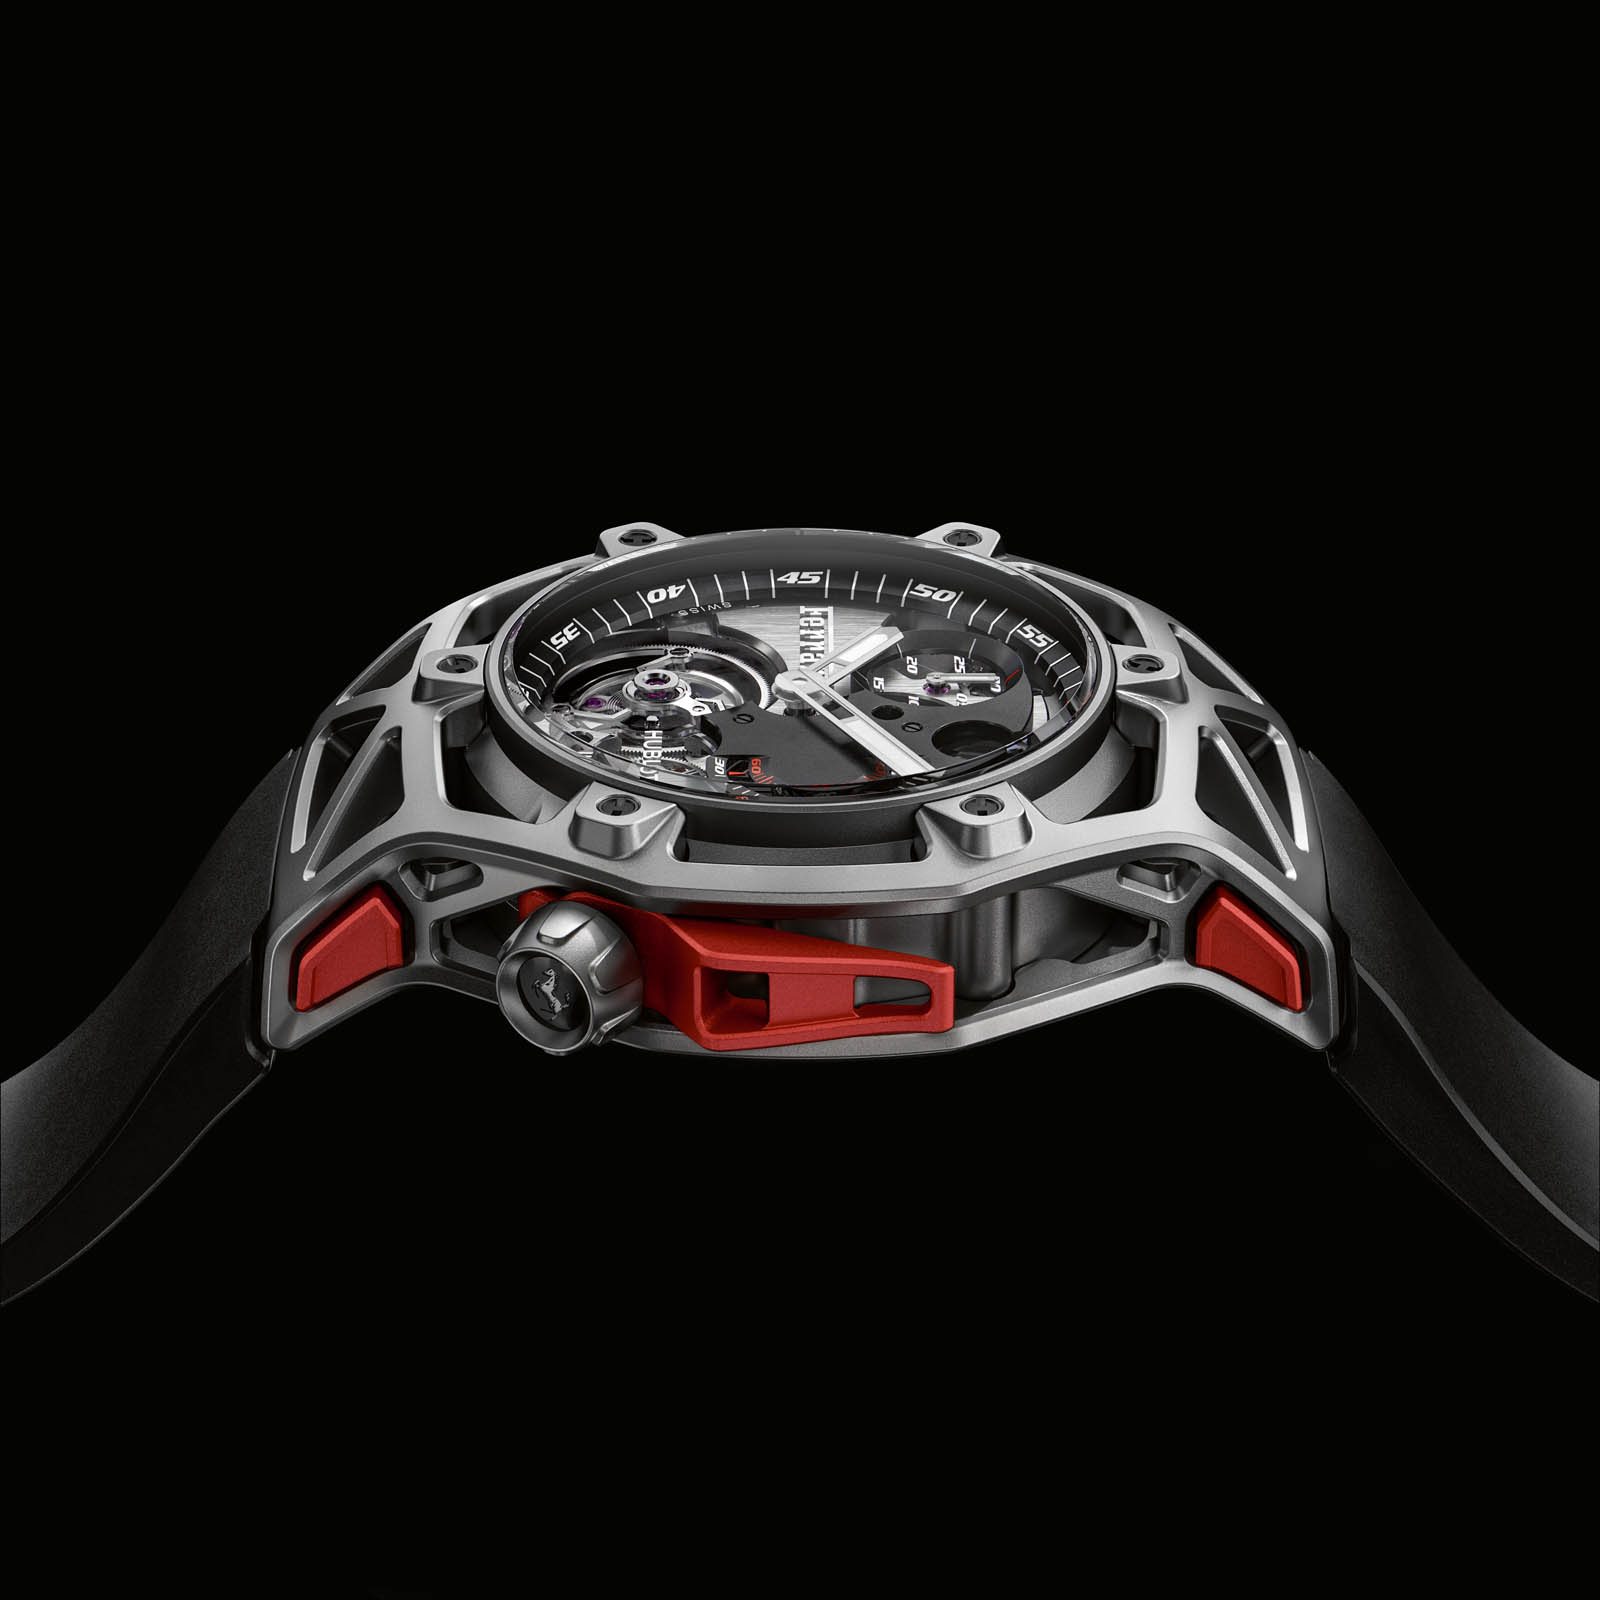 Hublot Techframe (17)